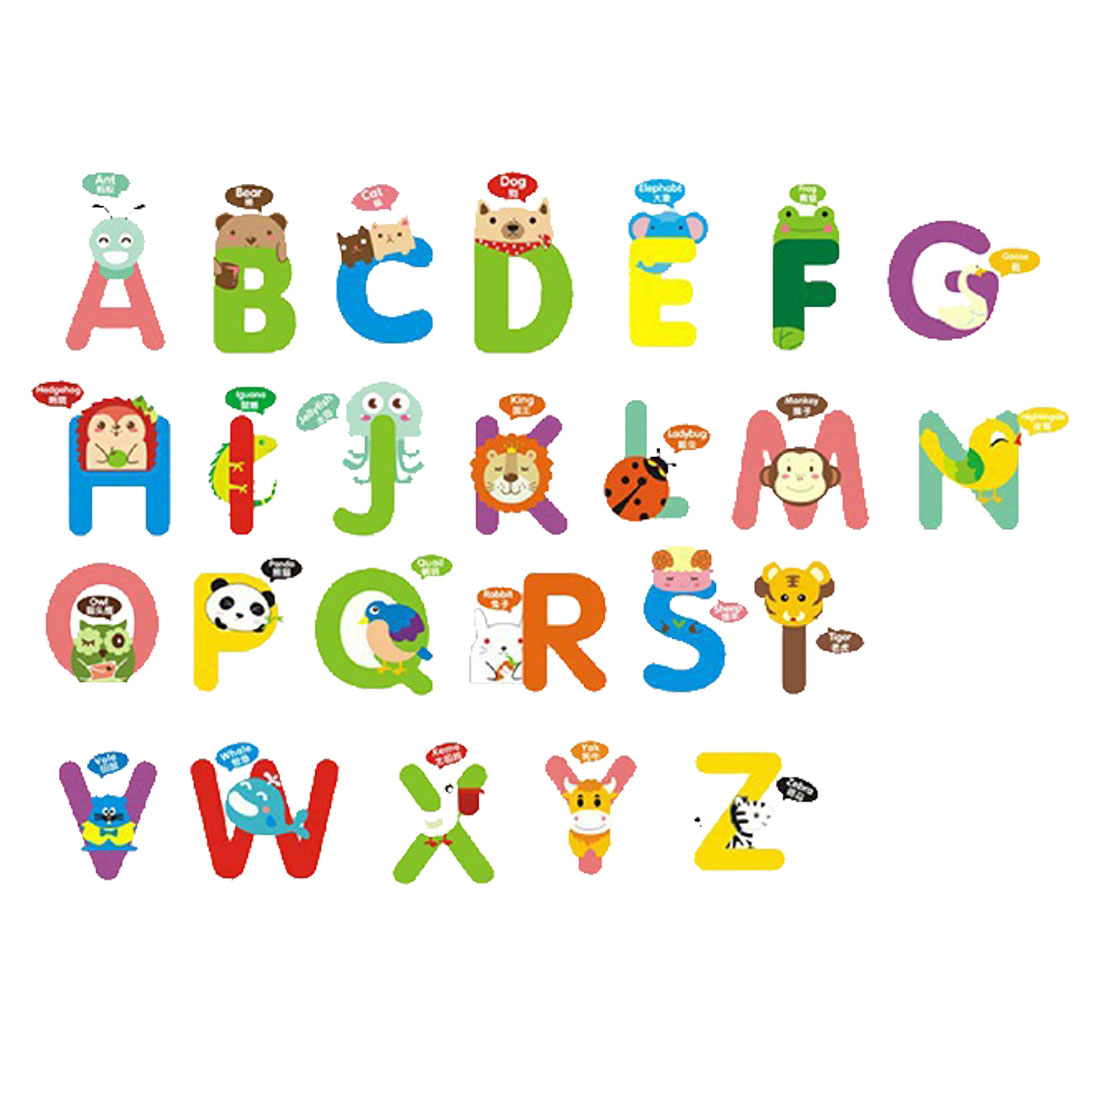 English Alphabet Wall Stickers Removable Art Decal for Living Room Bedroom